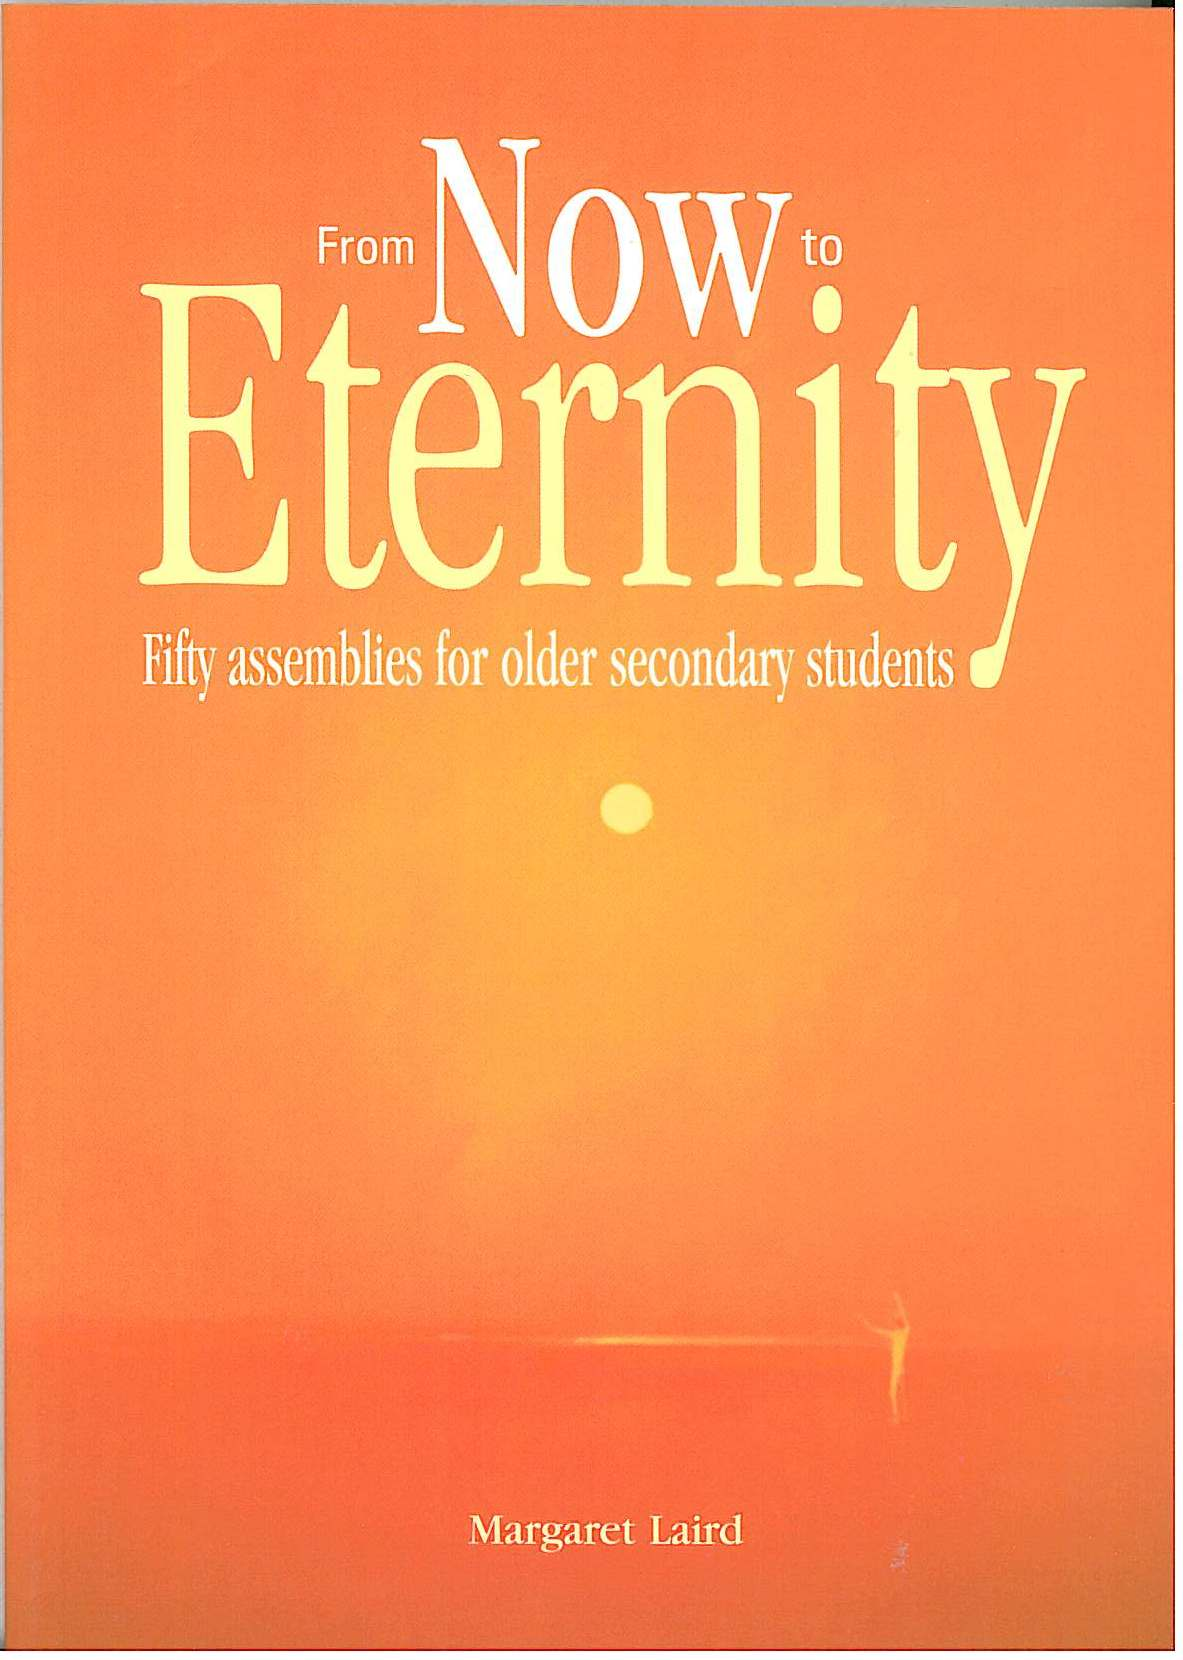 From Now to Eternity